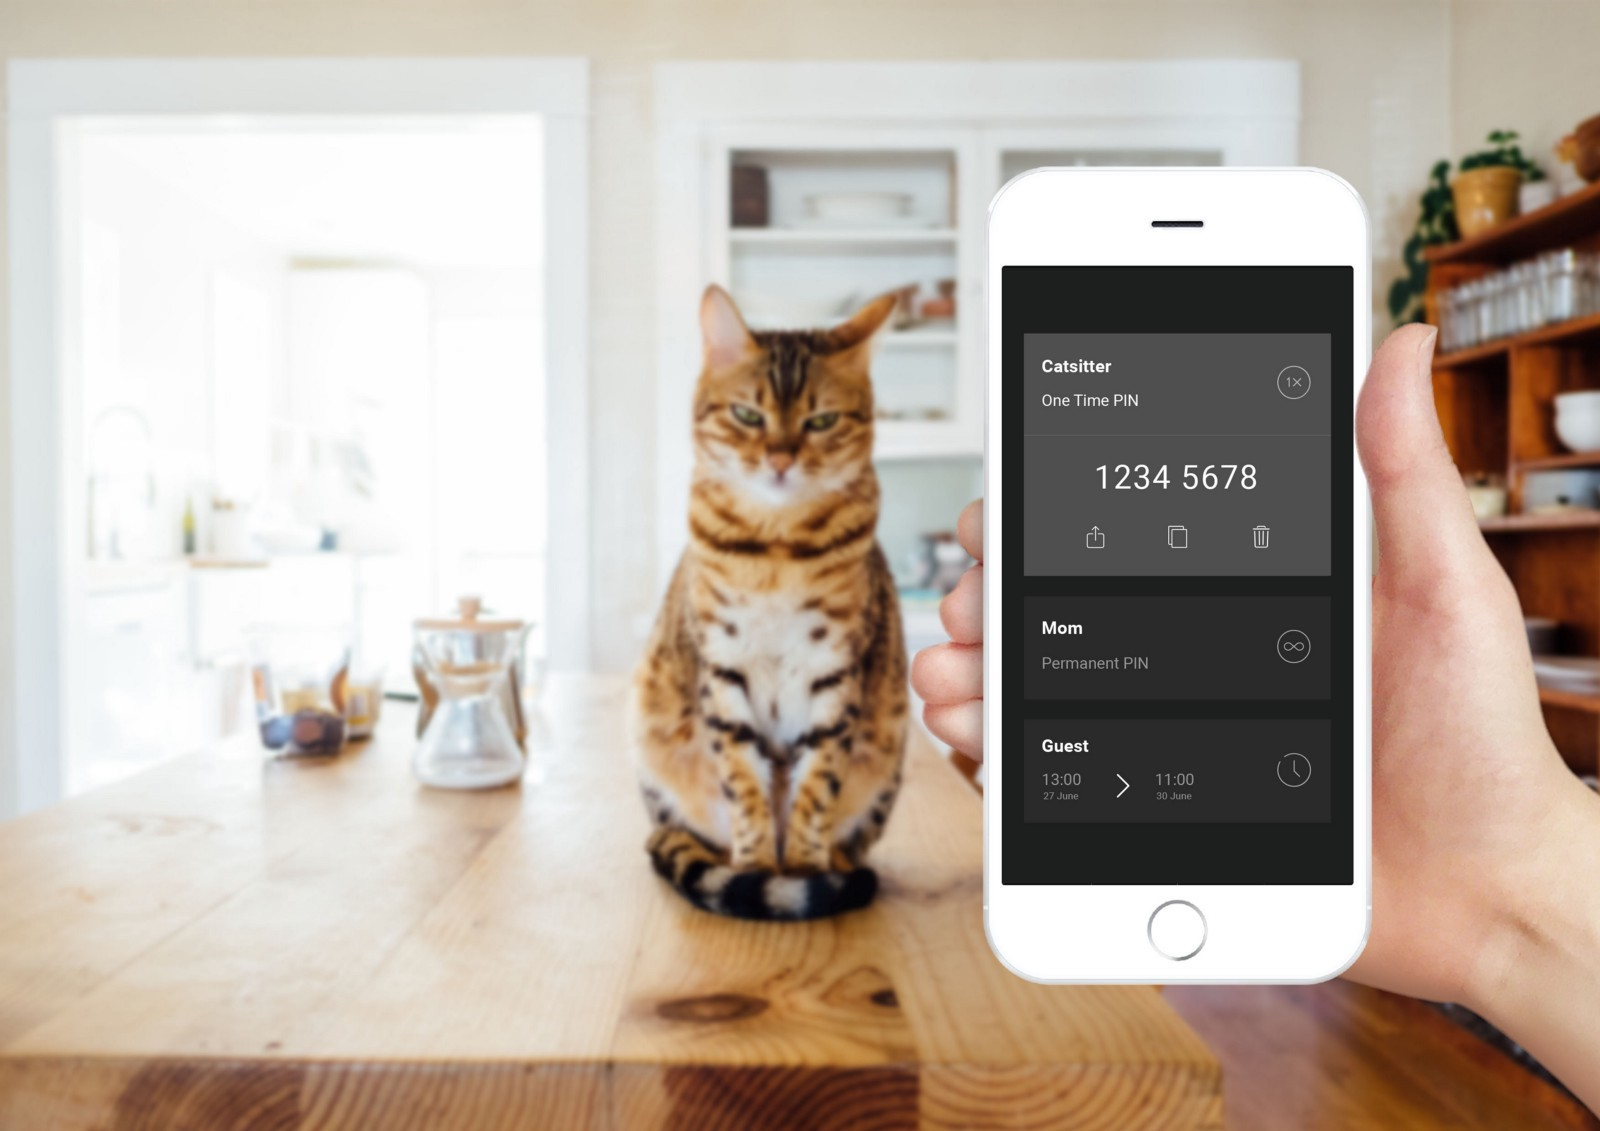 These PropTech Startups Are Changing the Real Estate Game | igloohome | Fohlio ff&e specification and interior design software